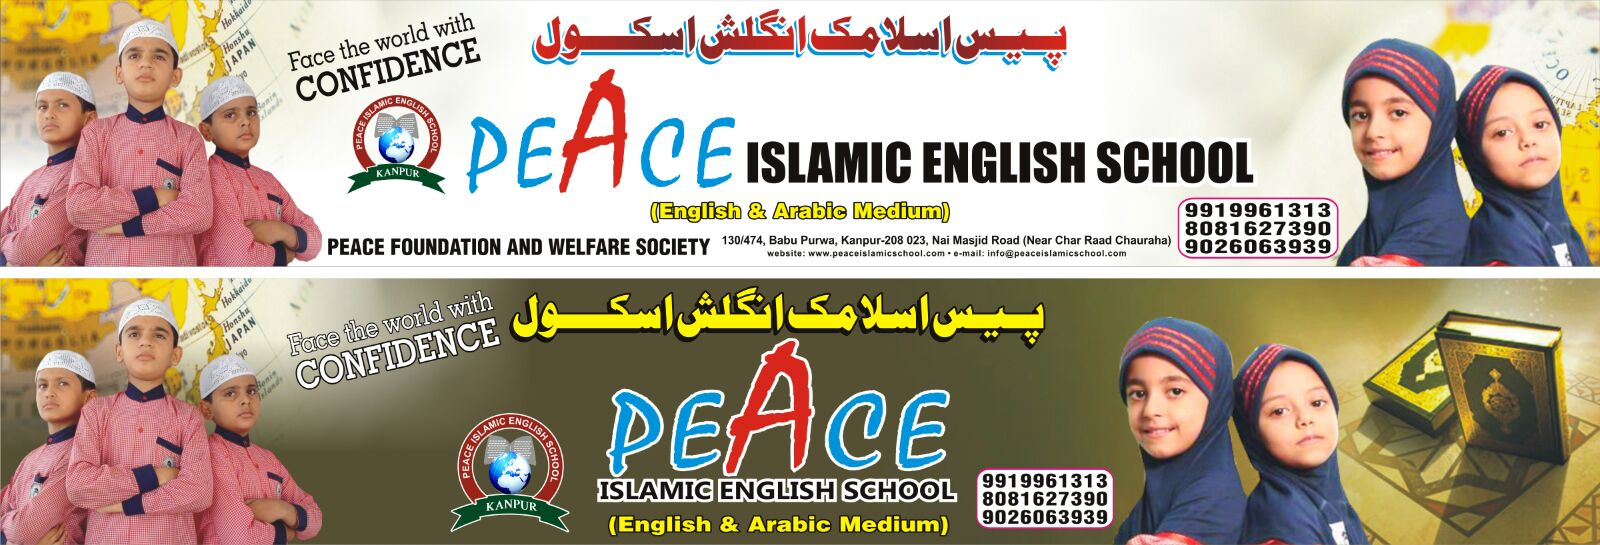 Peace Islamic English School